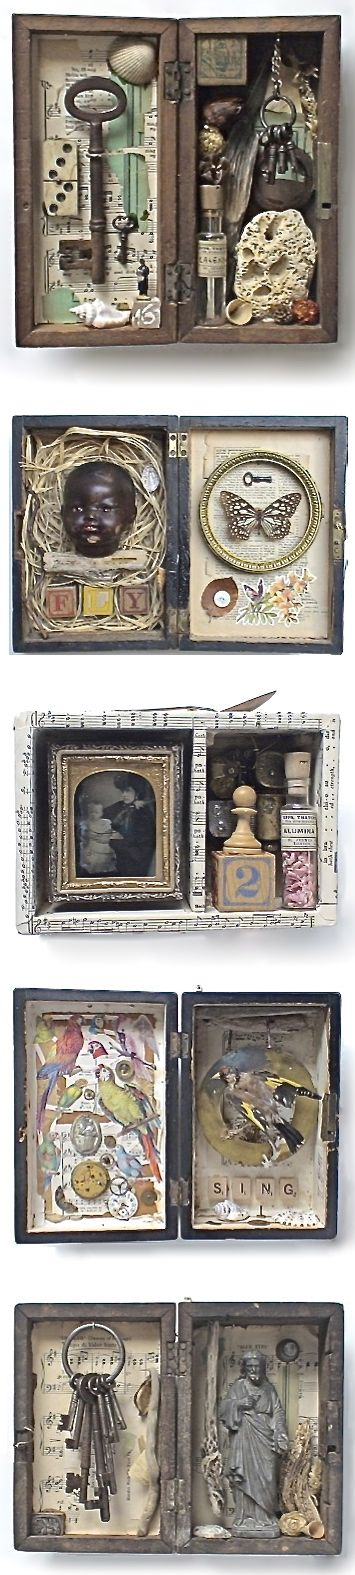 Inspiration for curiosity cabinets - assemblage art by Mike Bennion